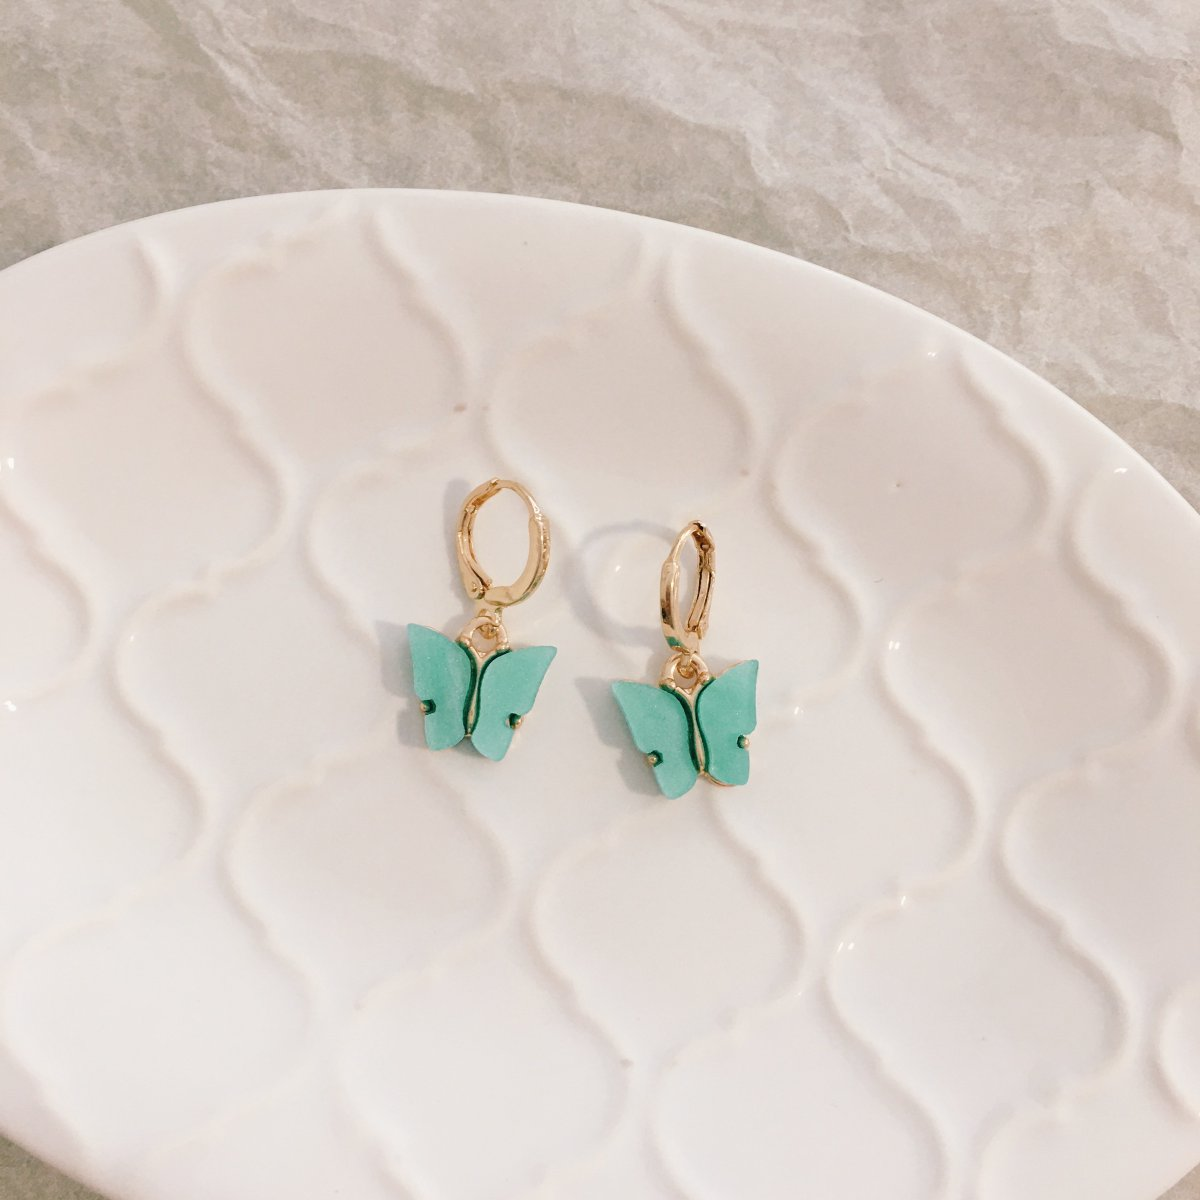 We see many pairs of butterflies in need of owners!  No worries, they would not fade away so soon.  These are the Pastel Blue Butterfly earrings.  #bythecloset101 #butterfly #natureinspired #butterflylovers #animallover https://t.co/UQXgsNuKwd